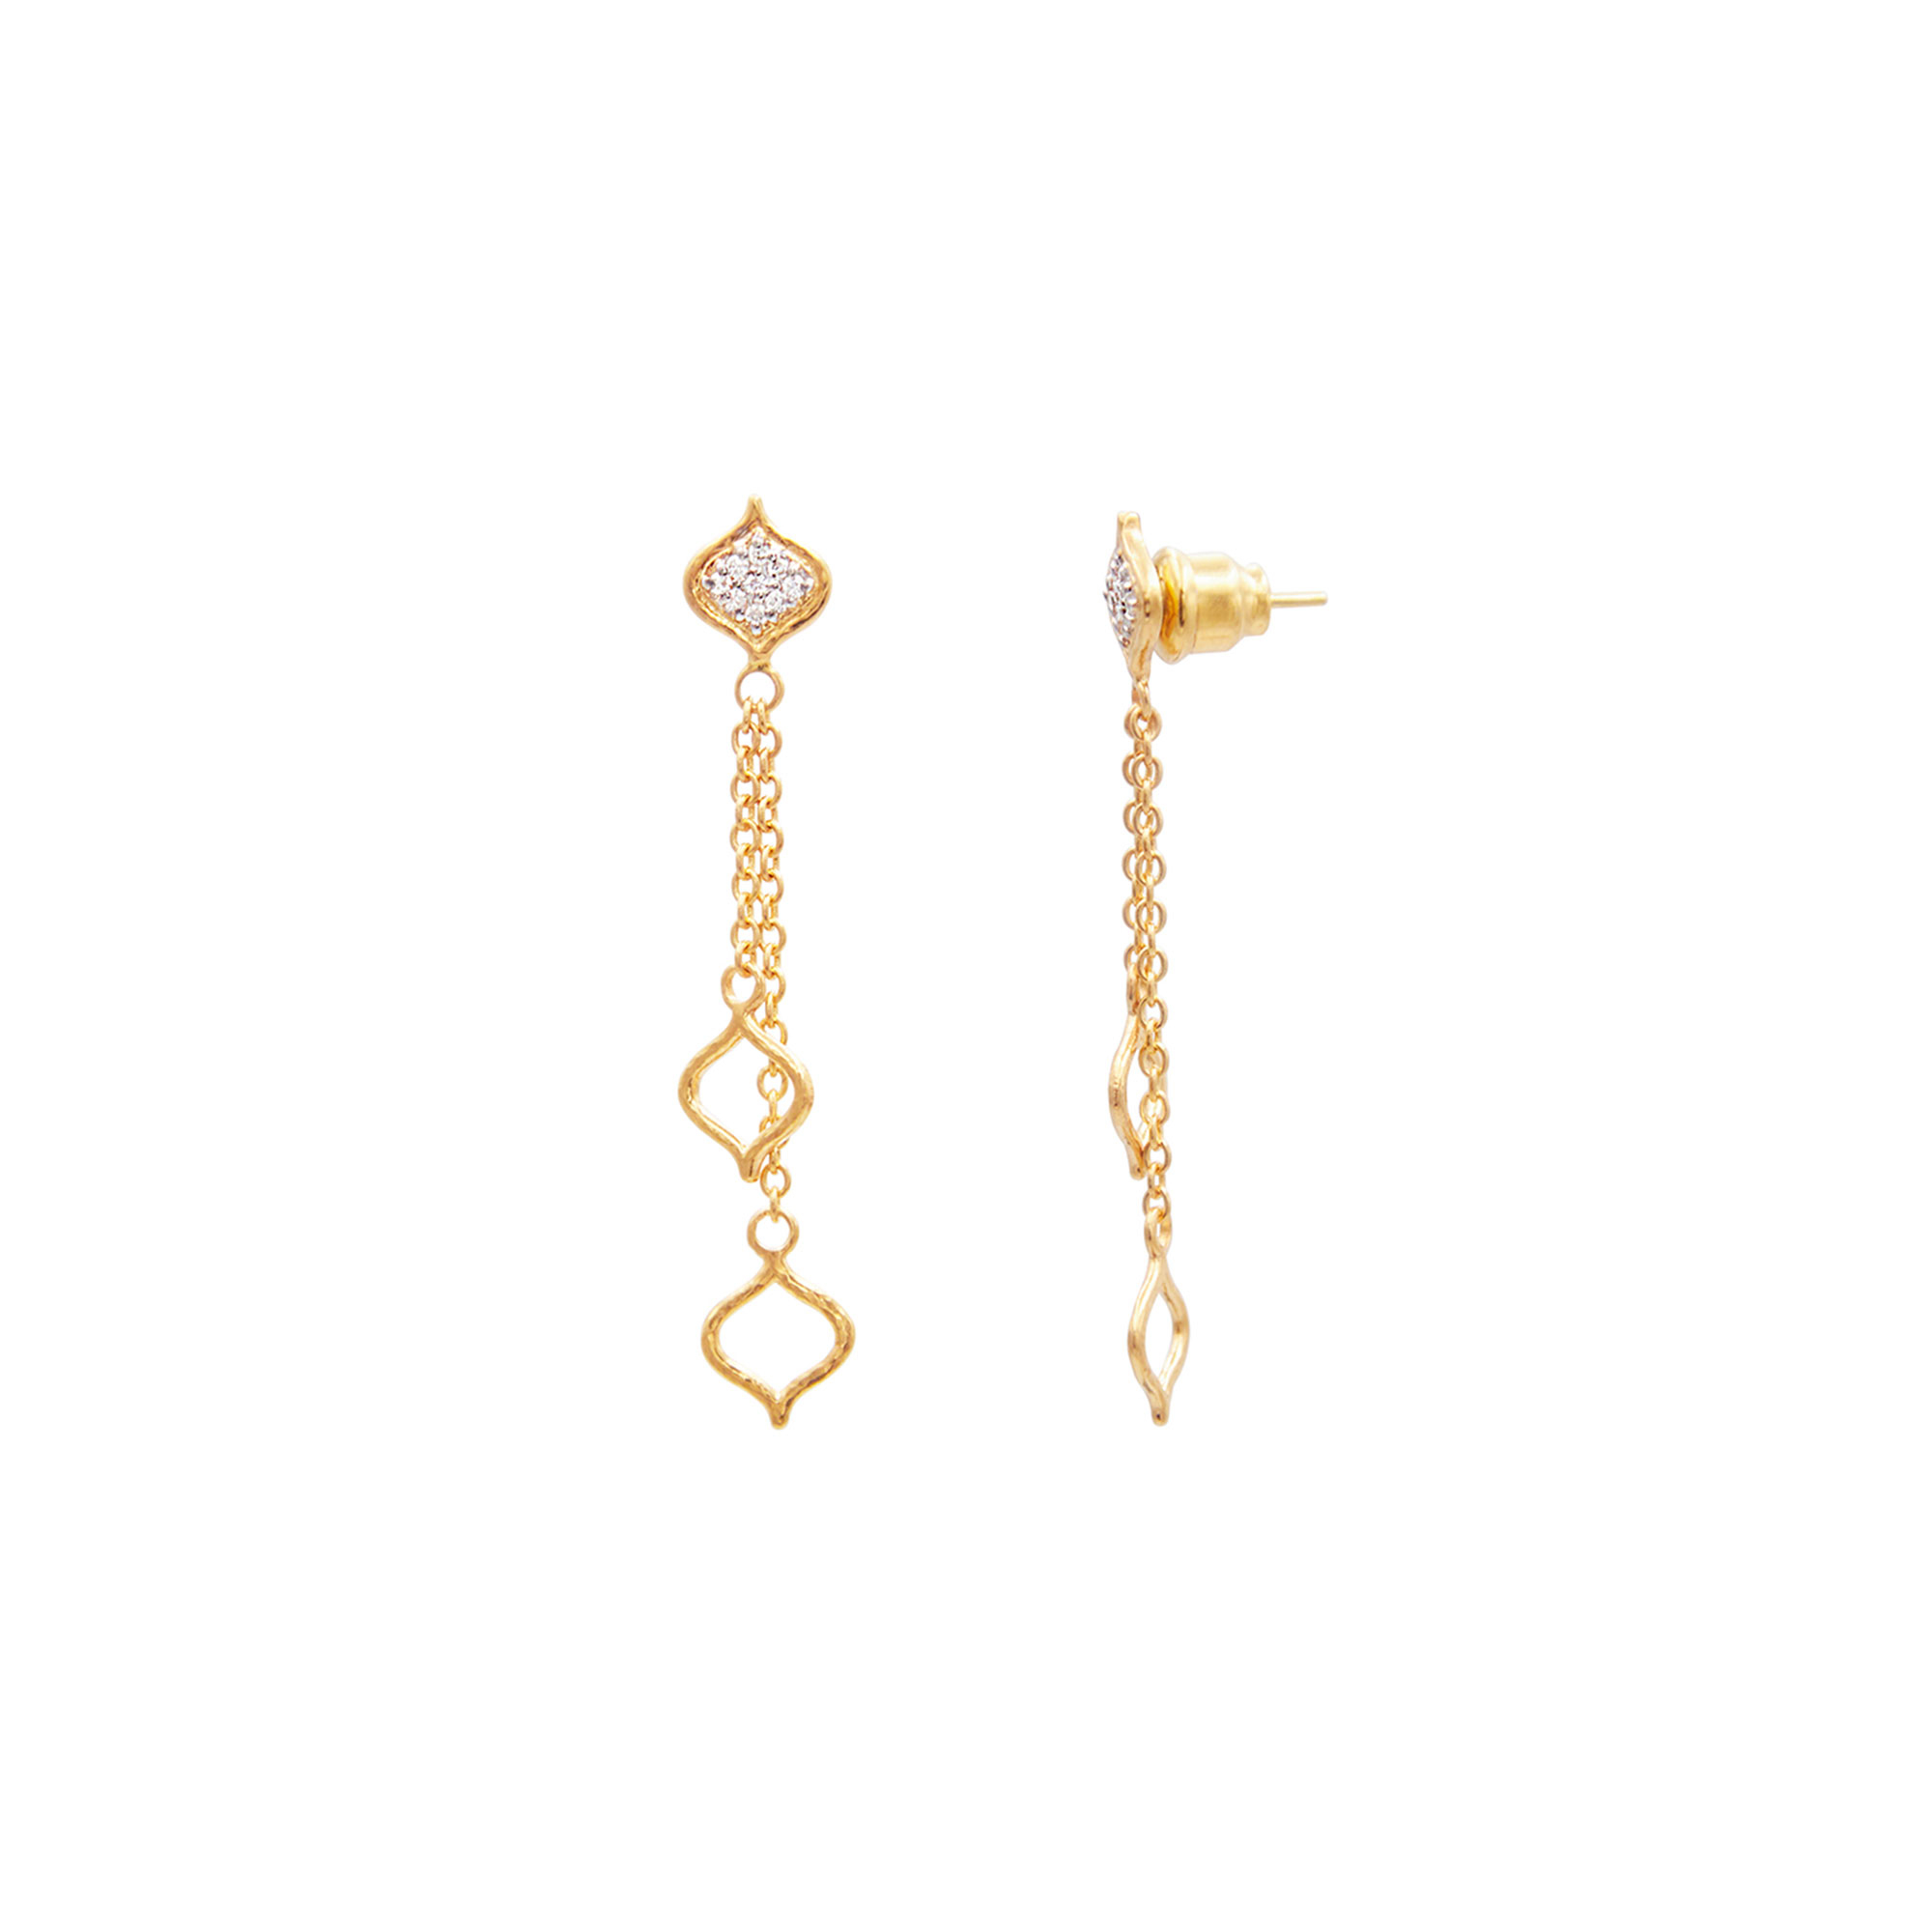 Gurhan 22K Yellow Gold 0.126cts White Diamond Gold Earrings with Stones GUE-YG-DI-7625-OS